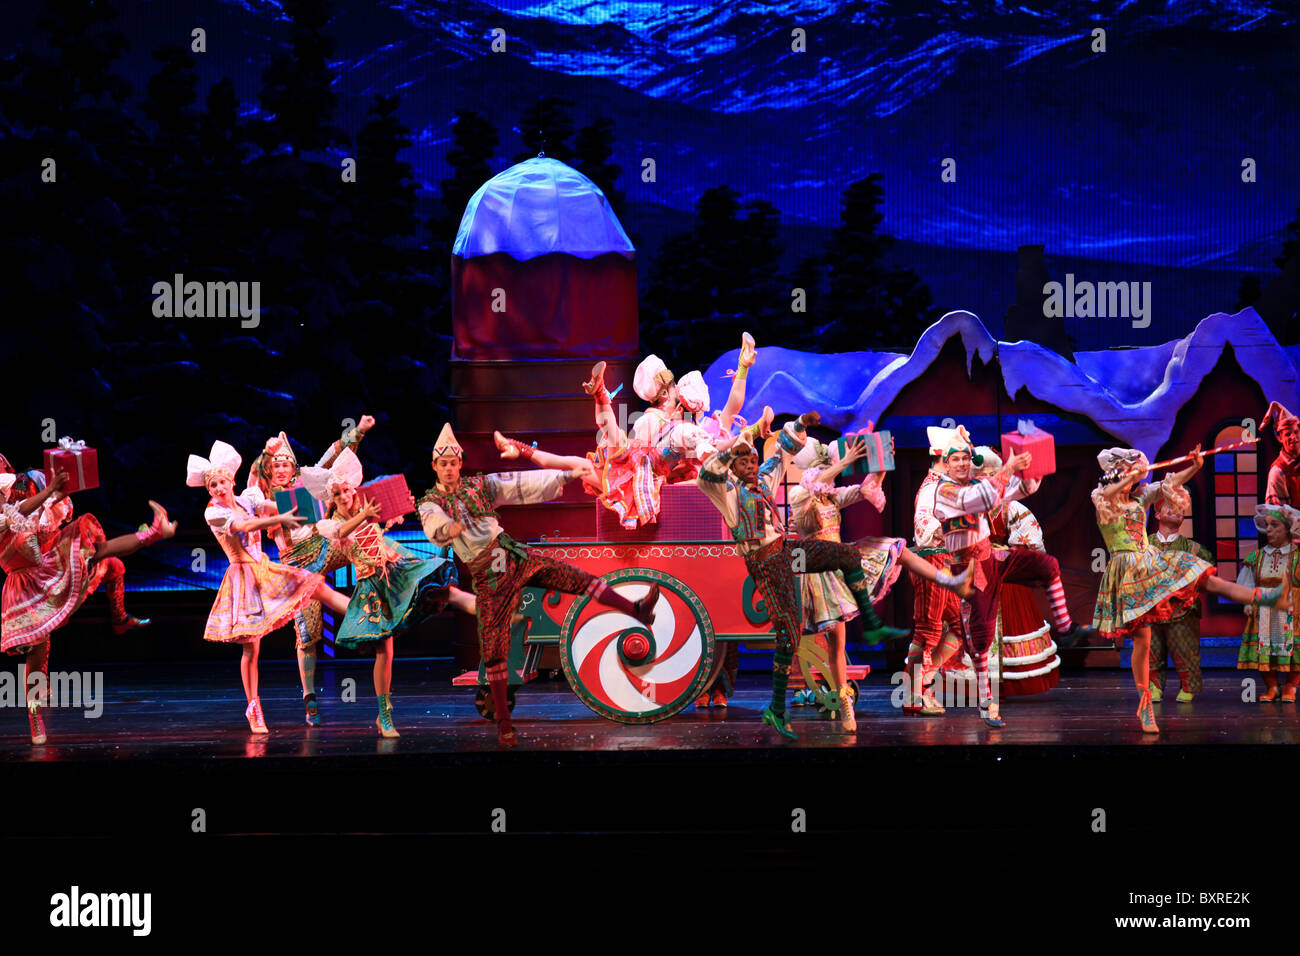 Radio city music hall Christmas spectacular show in New York city ...